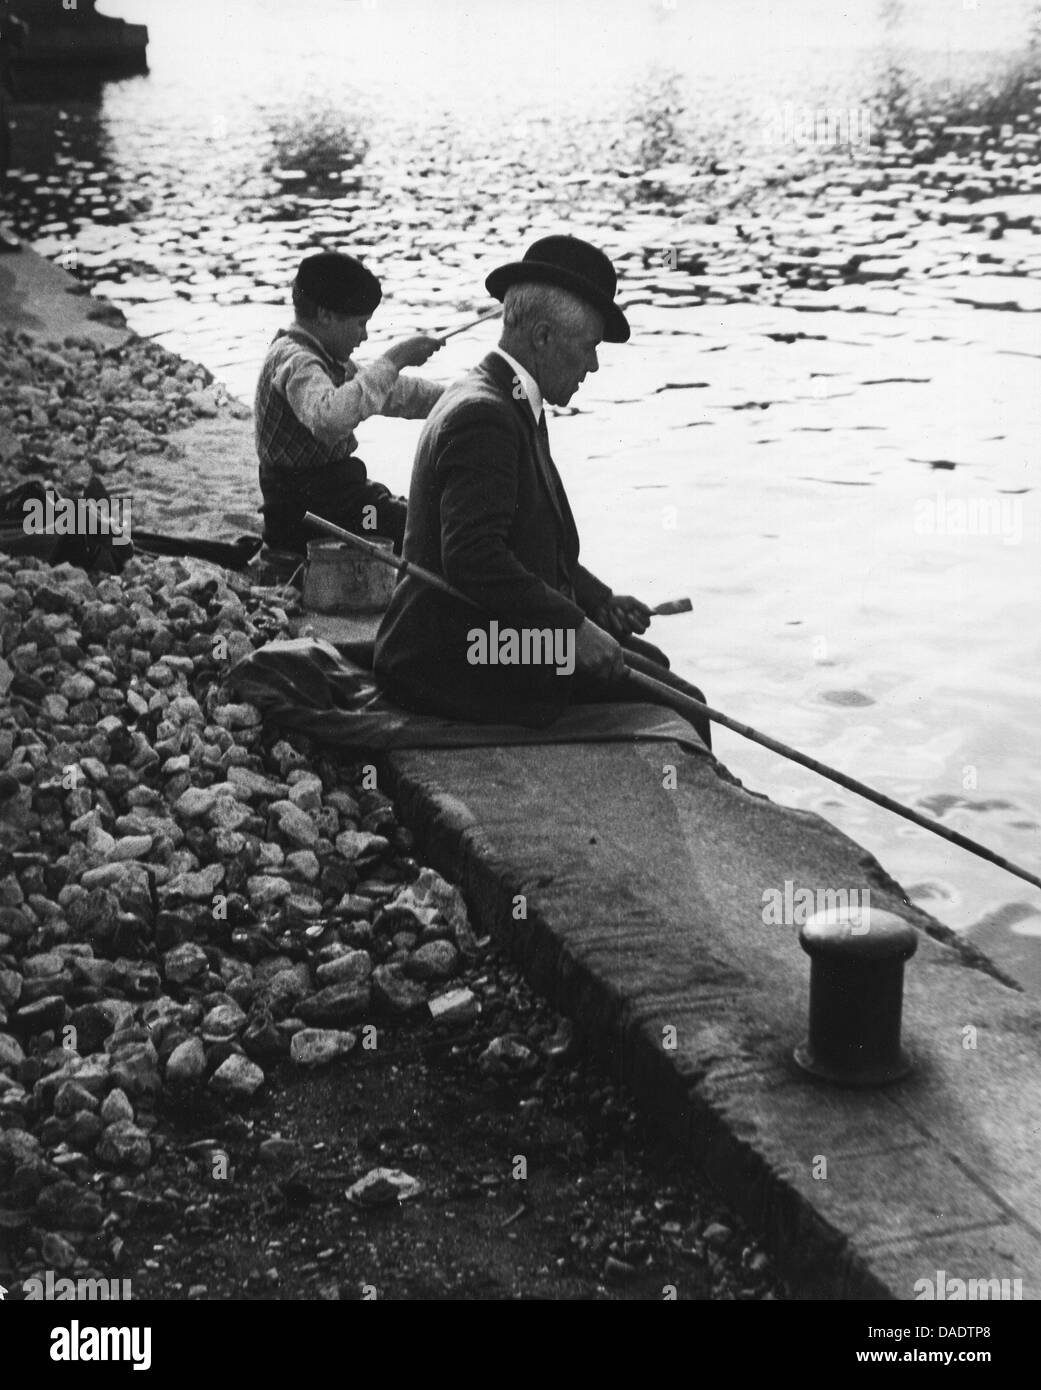 Paris 1935, man and boy fishing. Image by photographer Fred Stein (1909-1967) who emigrated 1933 from Nazi Germany - Stock Image